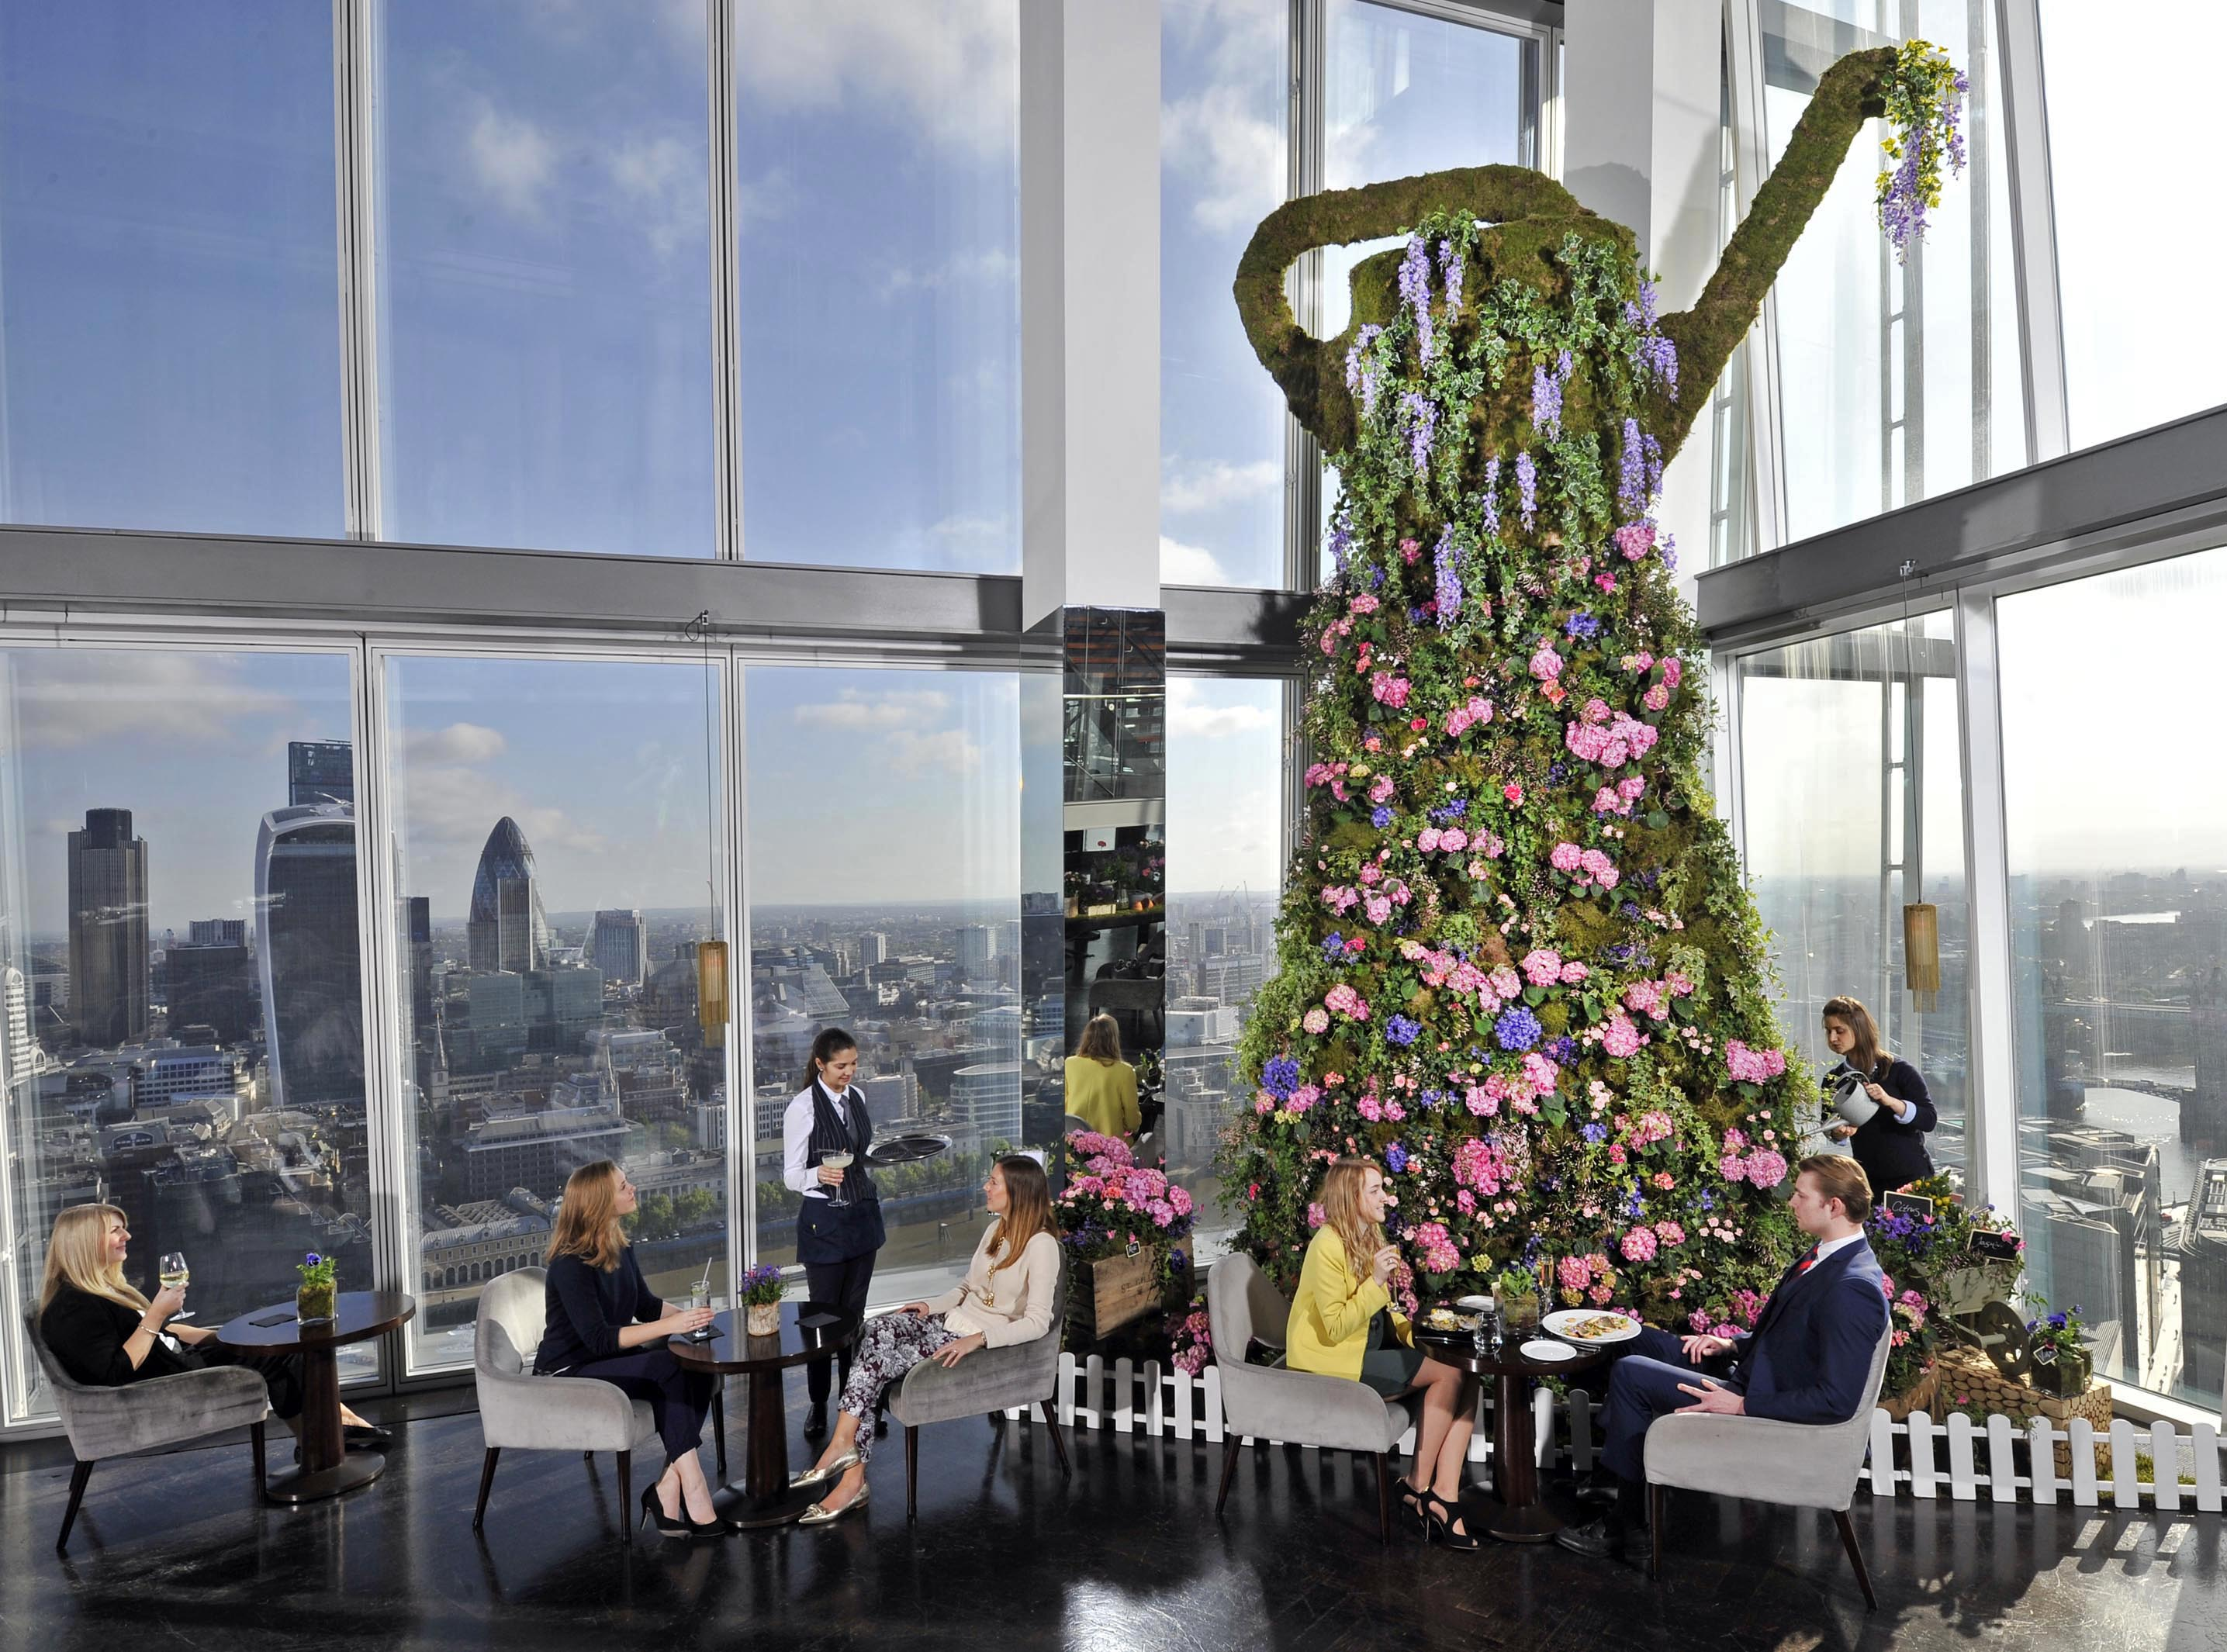 An English Country Gardenu202631 Floors Above Ground Level!